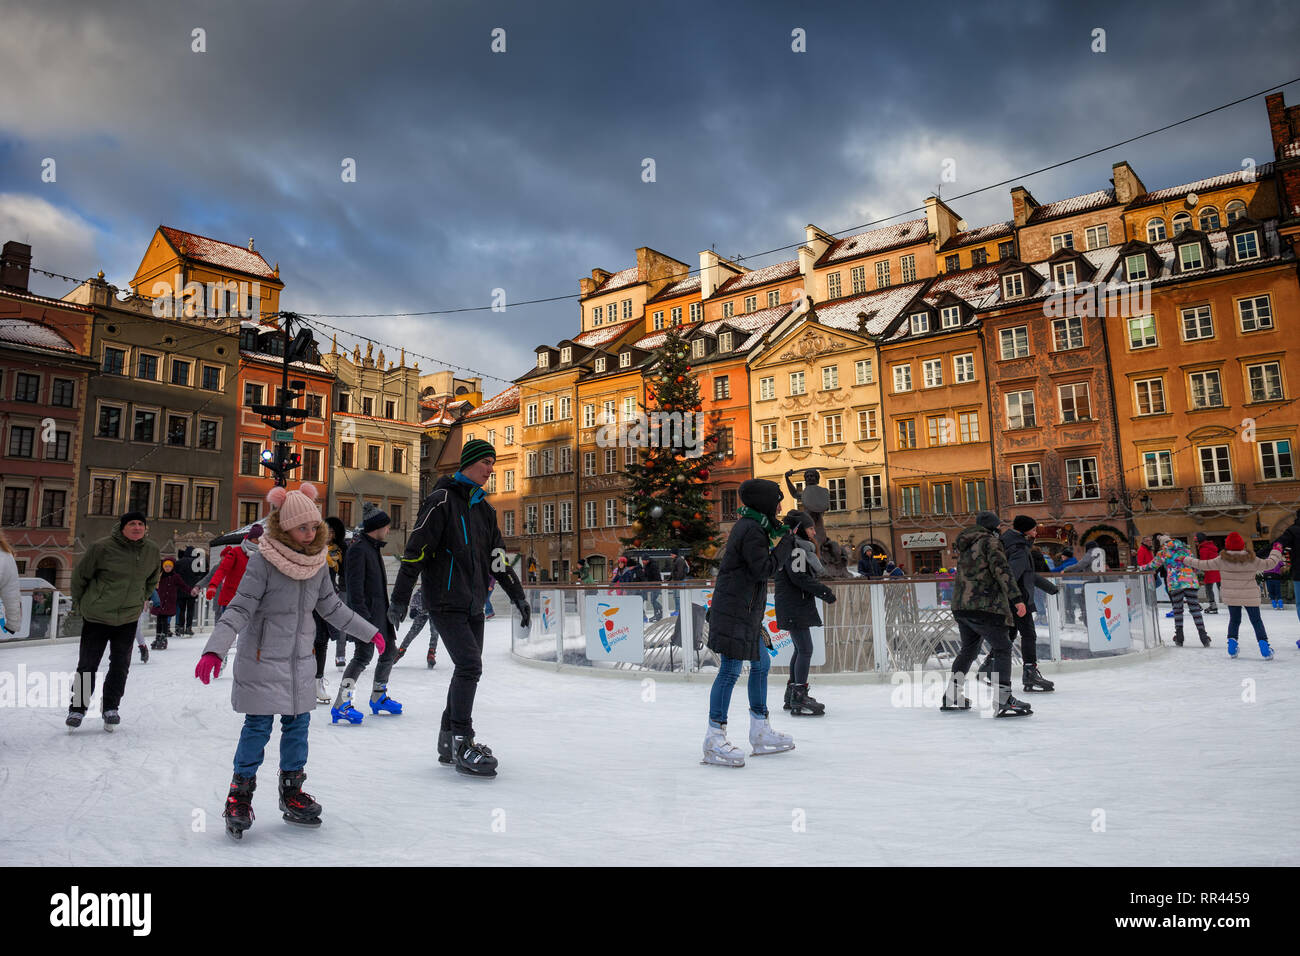 Poland, city of Warsaw, people skating on ice rink at Old Town Market Sqaure at sunset, historic tenement houses in the background, Christmas time. - Stock Image